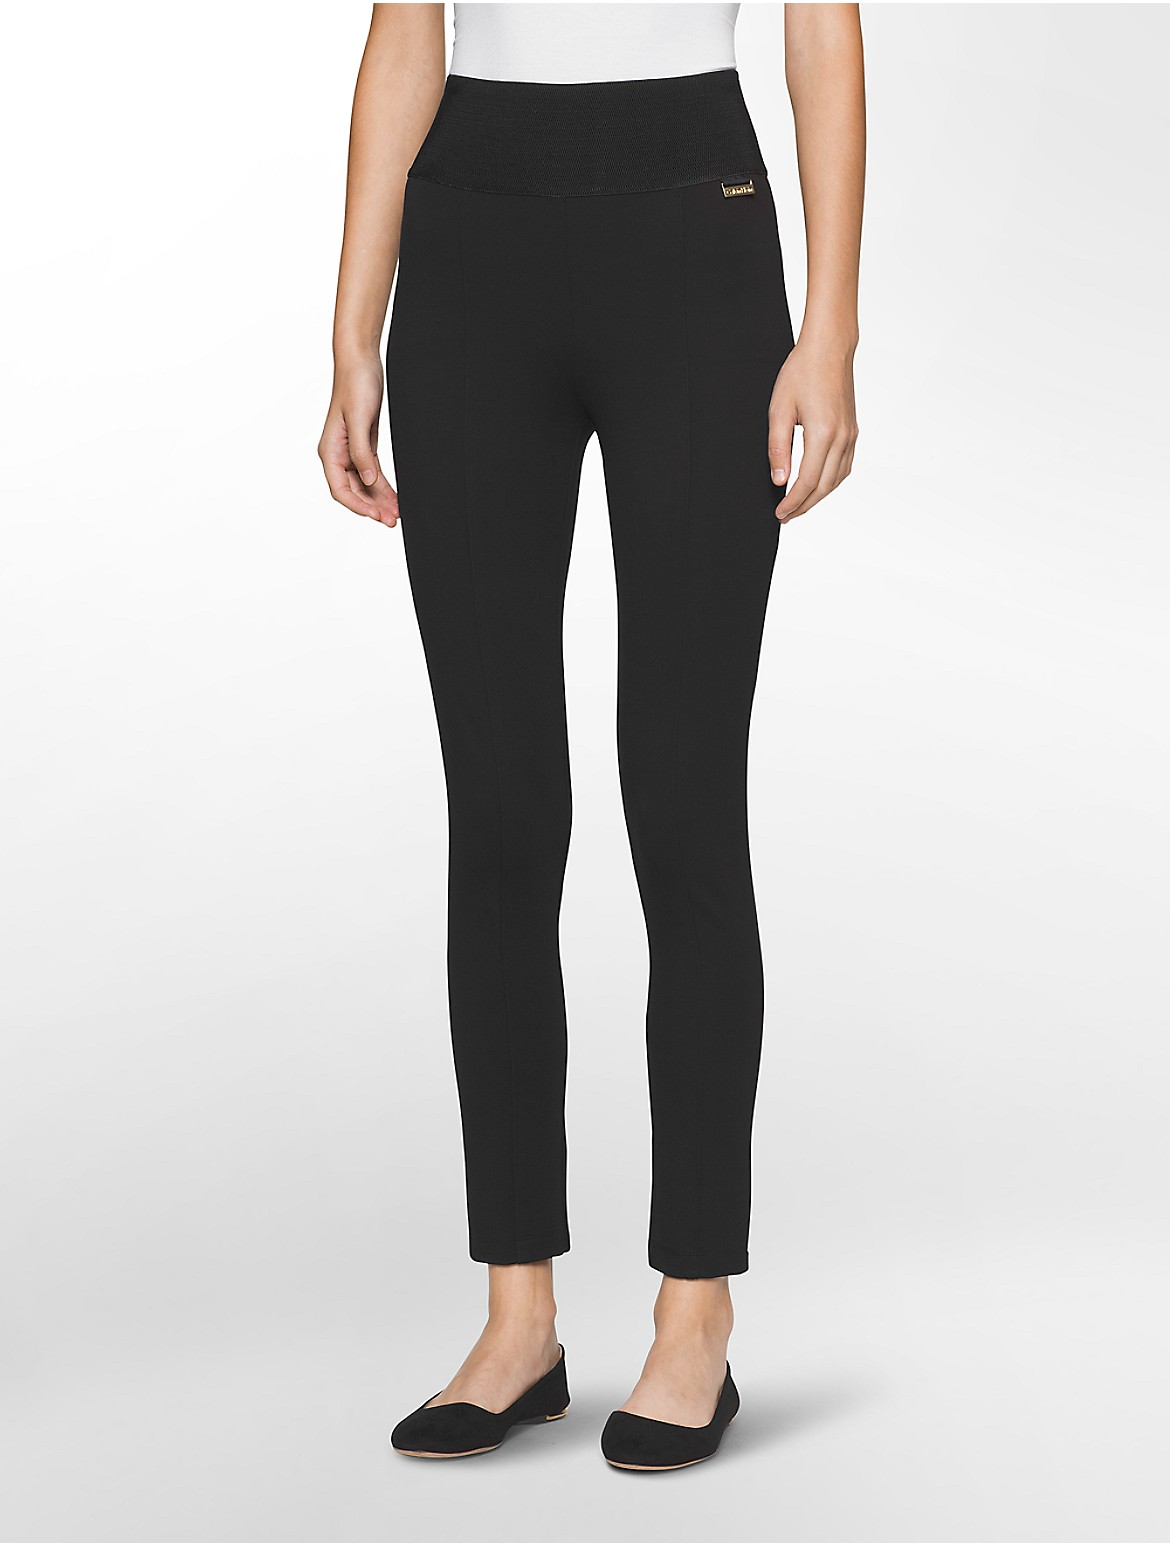 Pinstripe Compression Pants Calvin Klein D Island Casual Wrinkle Vintage Power Stretch Wide Waistband Leggings